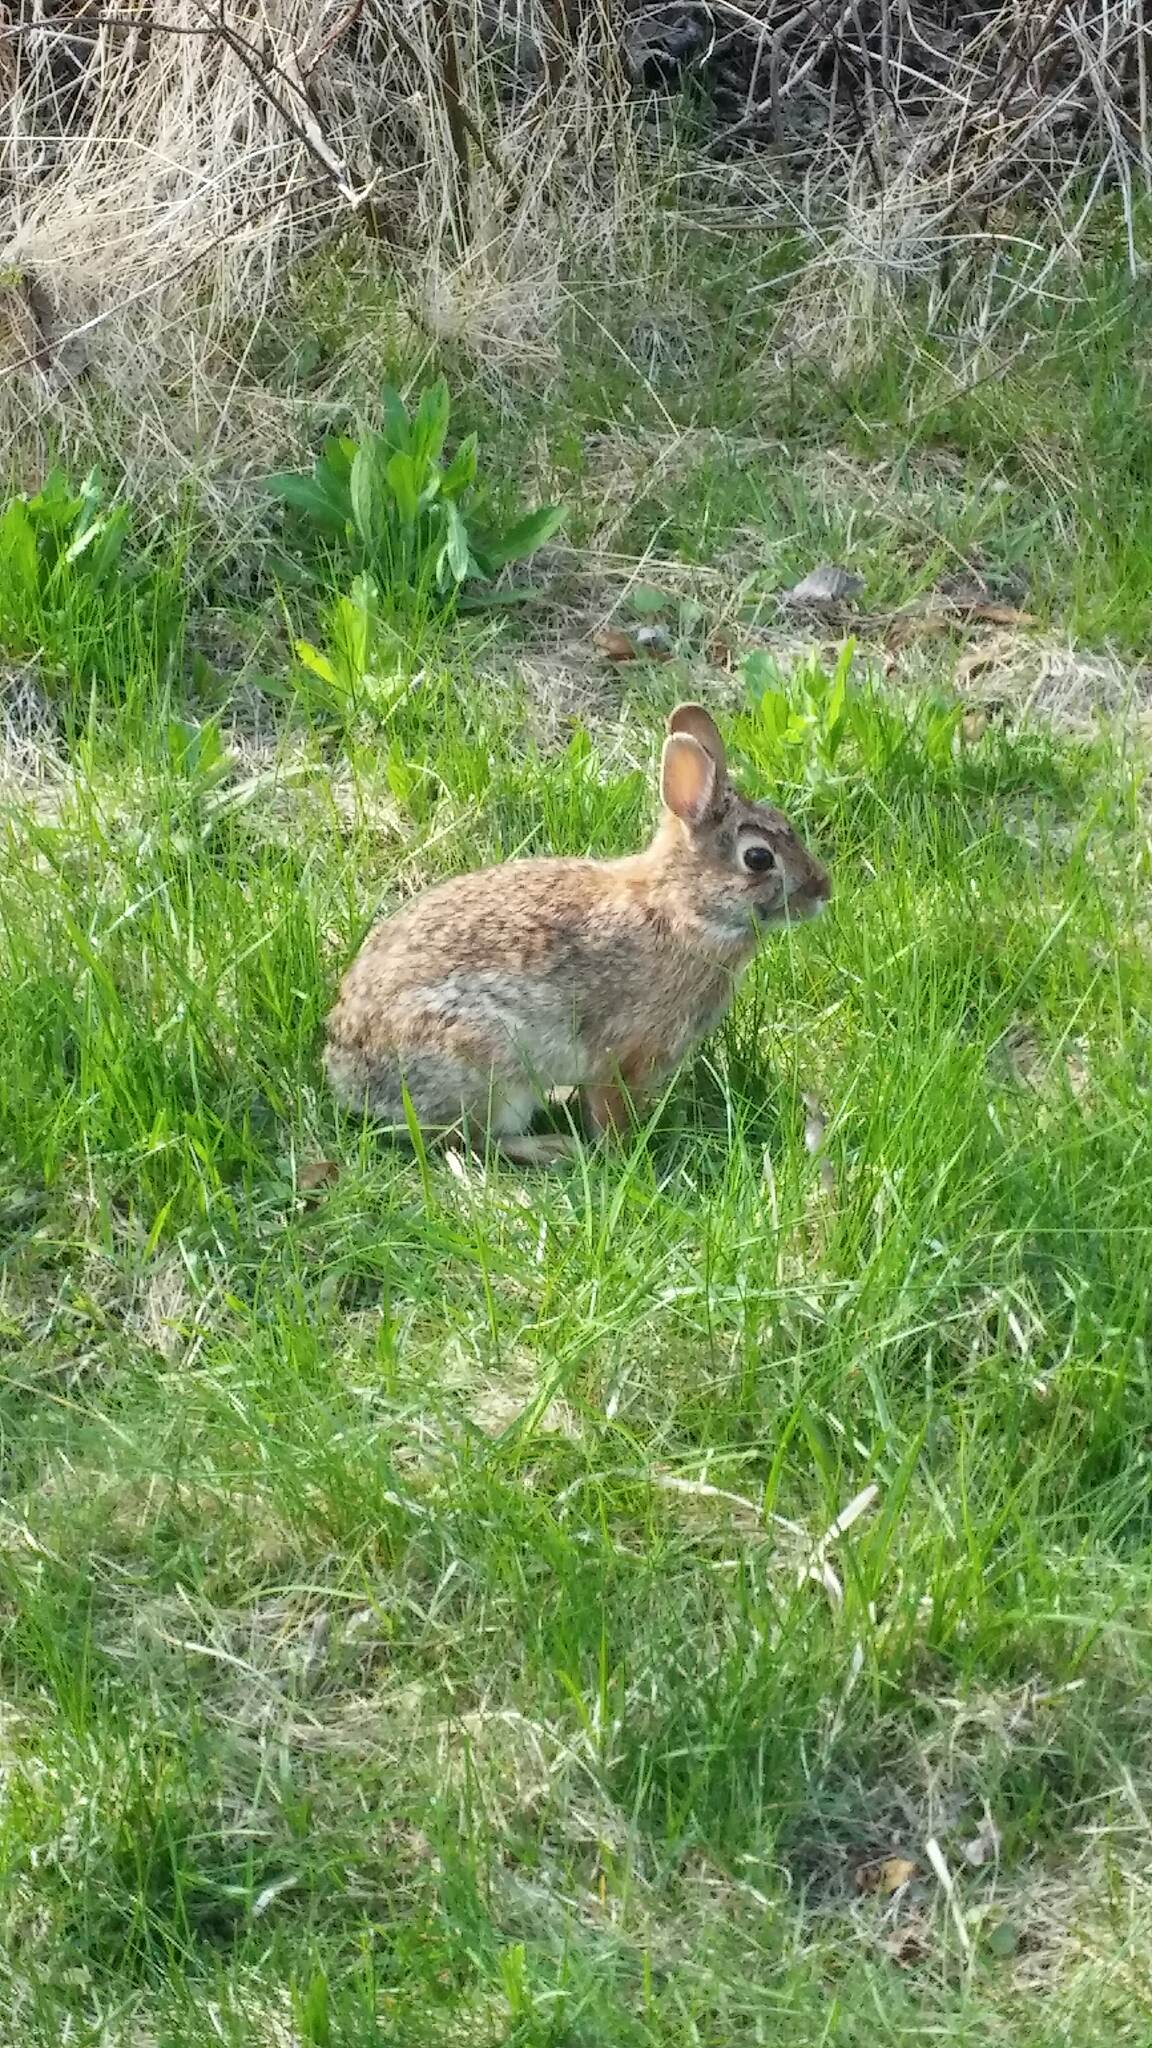 Lebanon Valley Rail-Trail Rabbit on the trail